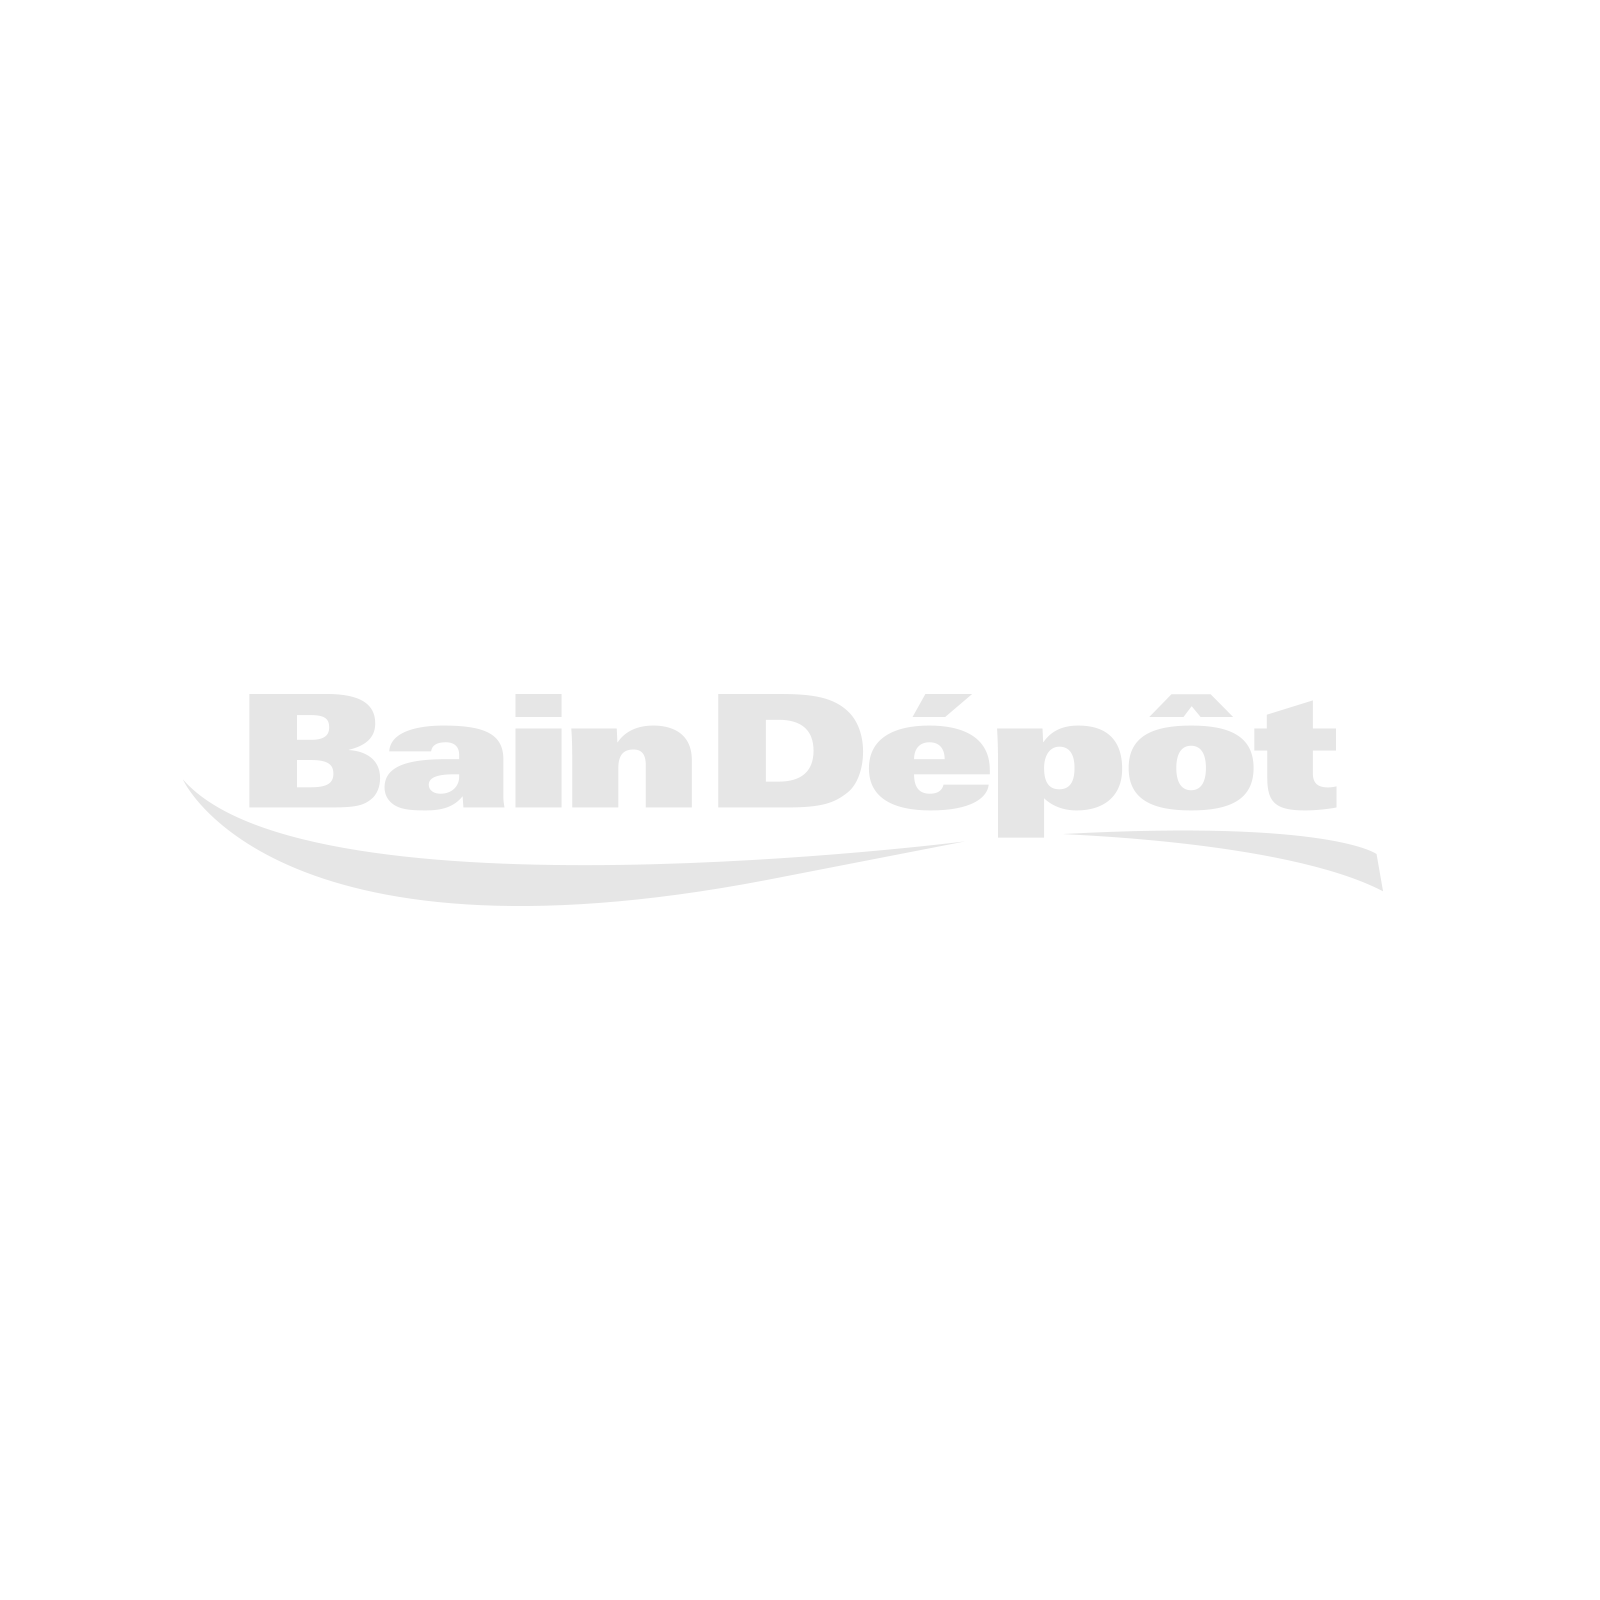 WARMUP- MAT for instalation within the adhesive layer under tiles or leveling compound convering 110 square feet